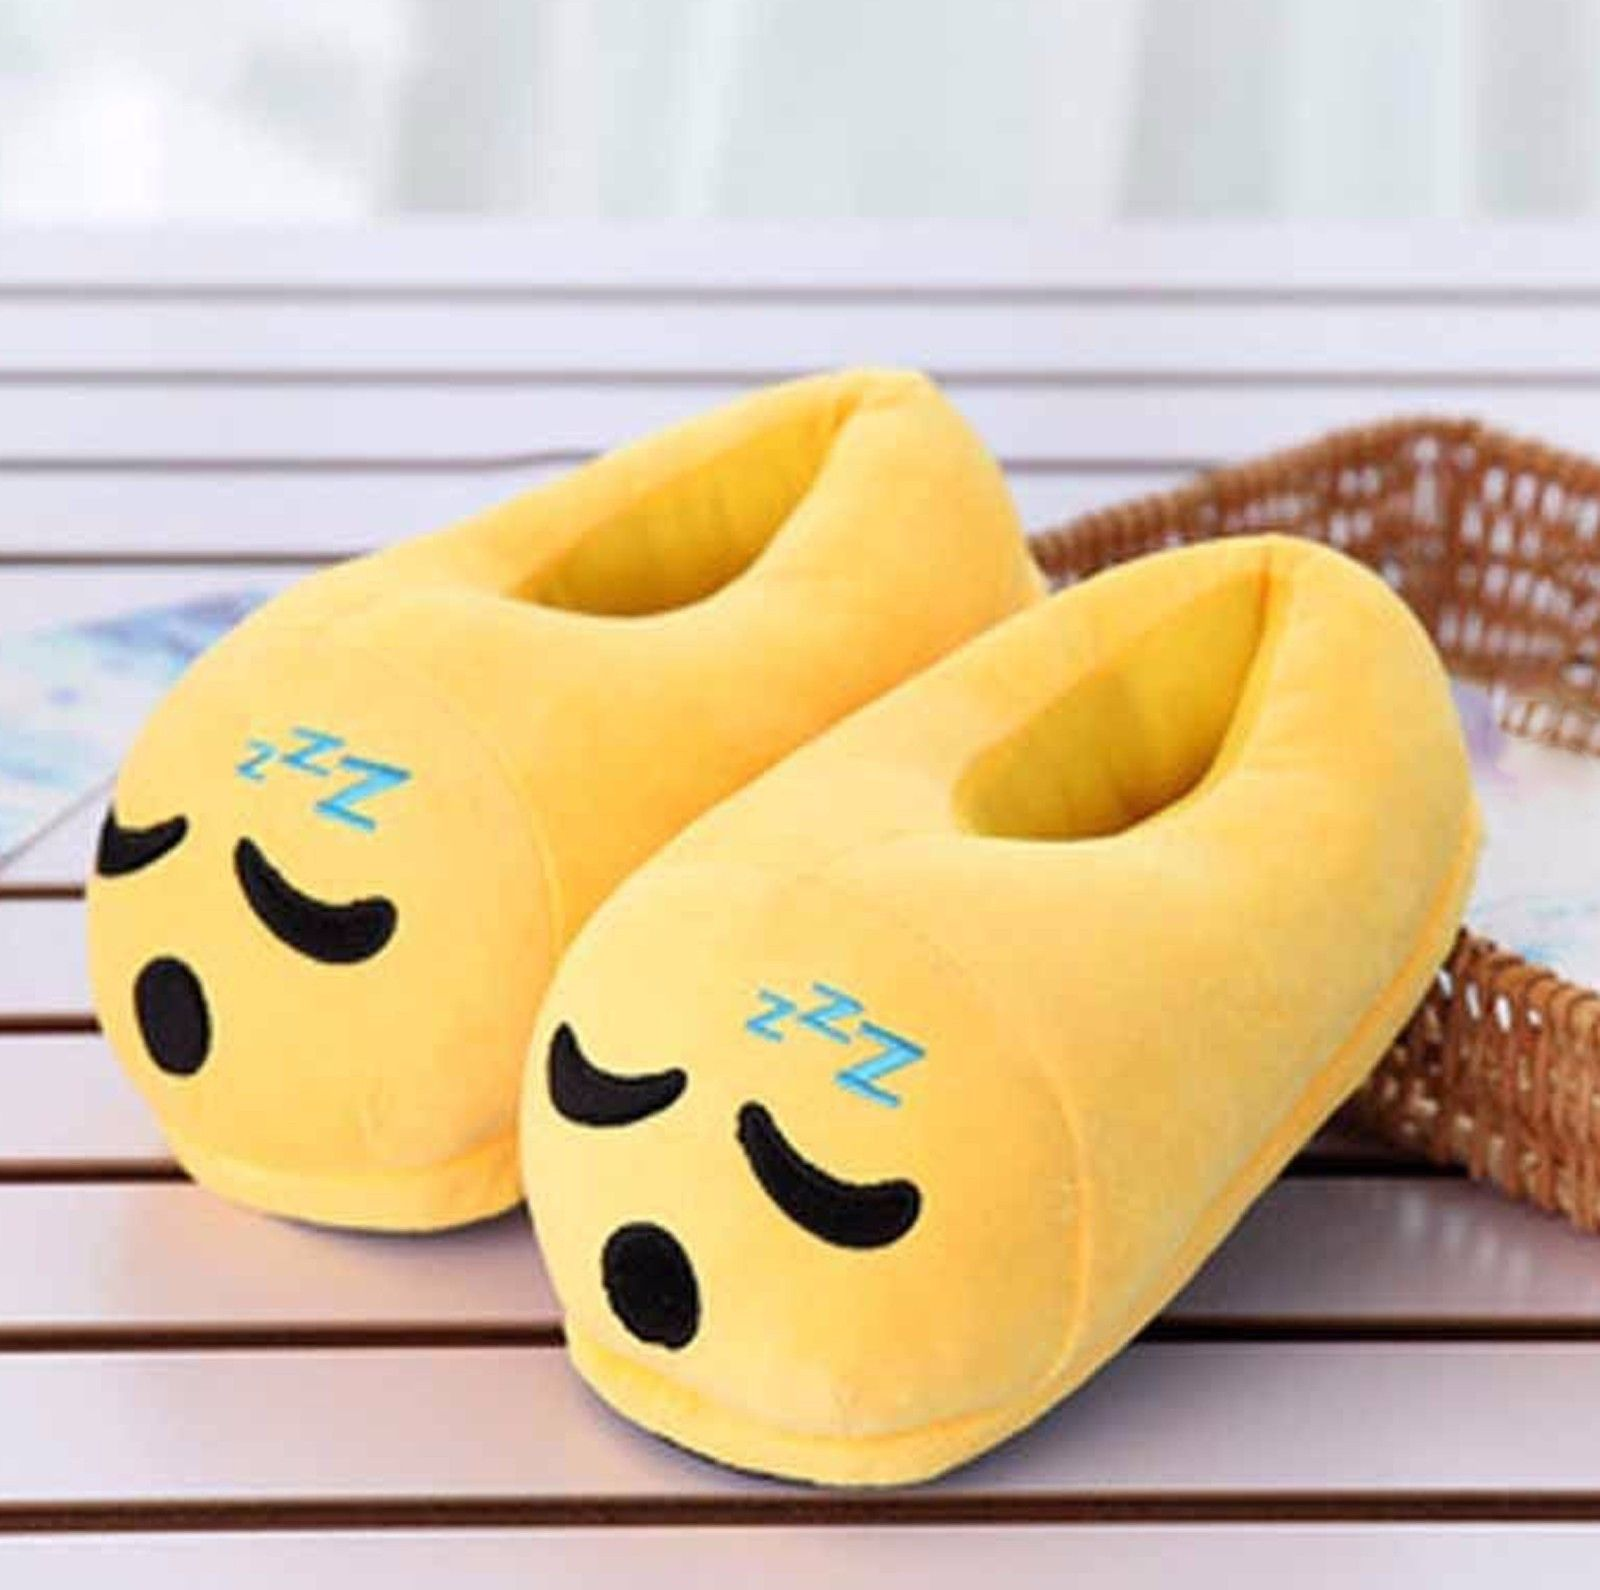 Cute Sleepy Emoji Sleep Slippers Plush Cotton Soft Warm Comfortable Indoor Bedroom Shoe For Big Kids & Women With Non-Skid Footpads New